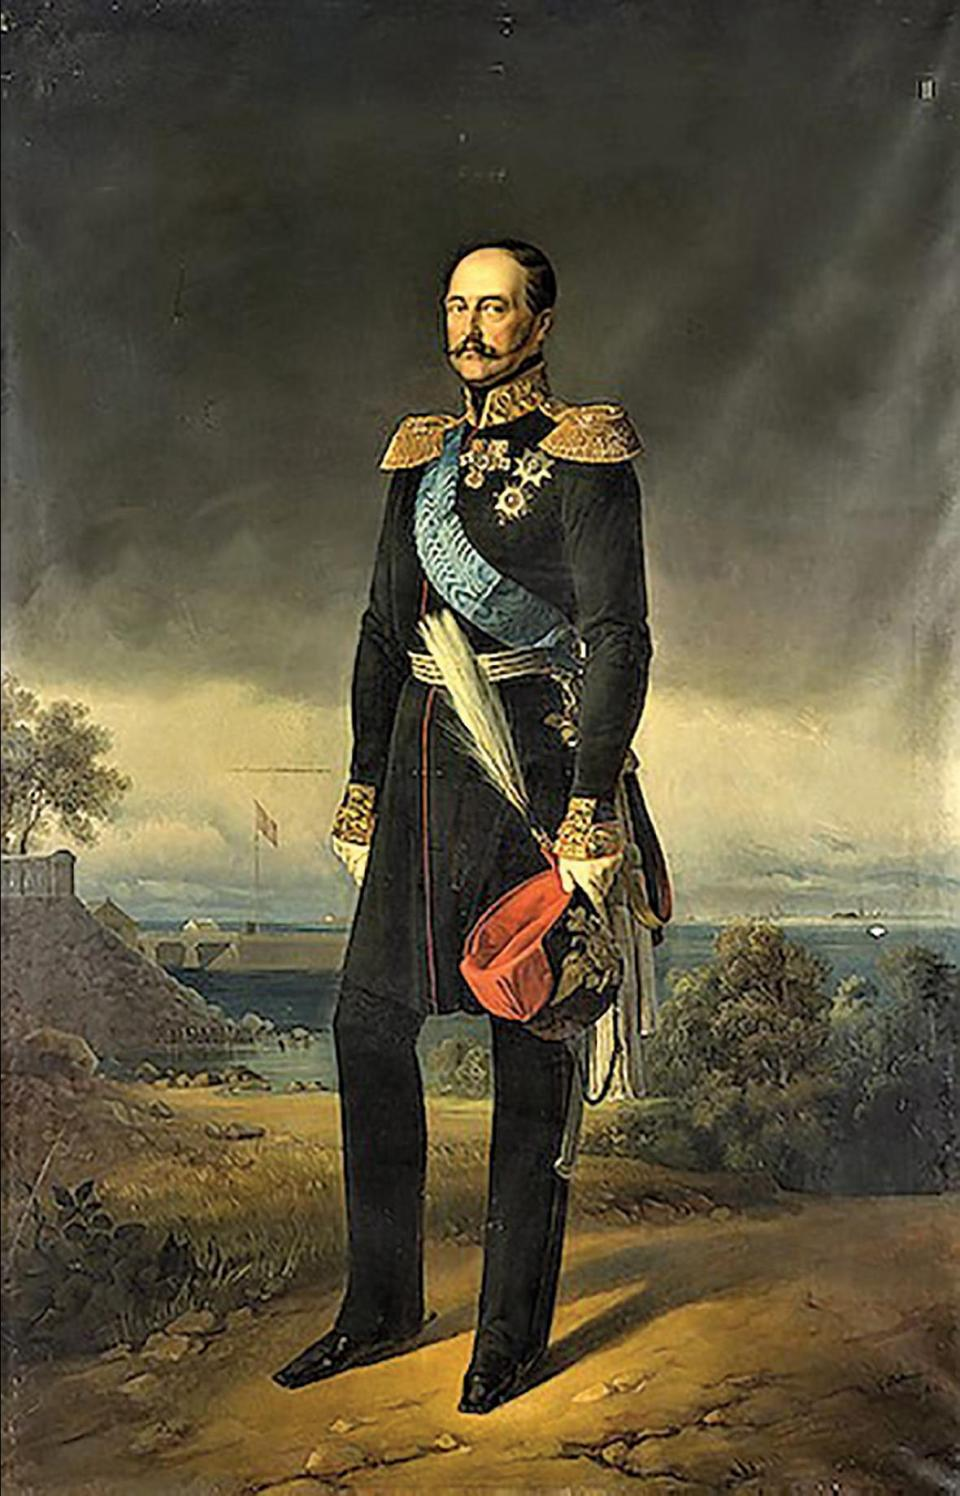 The Czar of Russia, Emperor Nicholas I in a painting by Egor Botman.